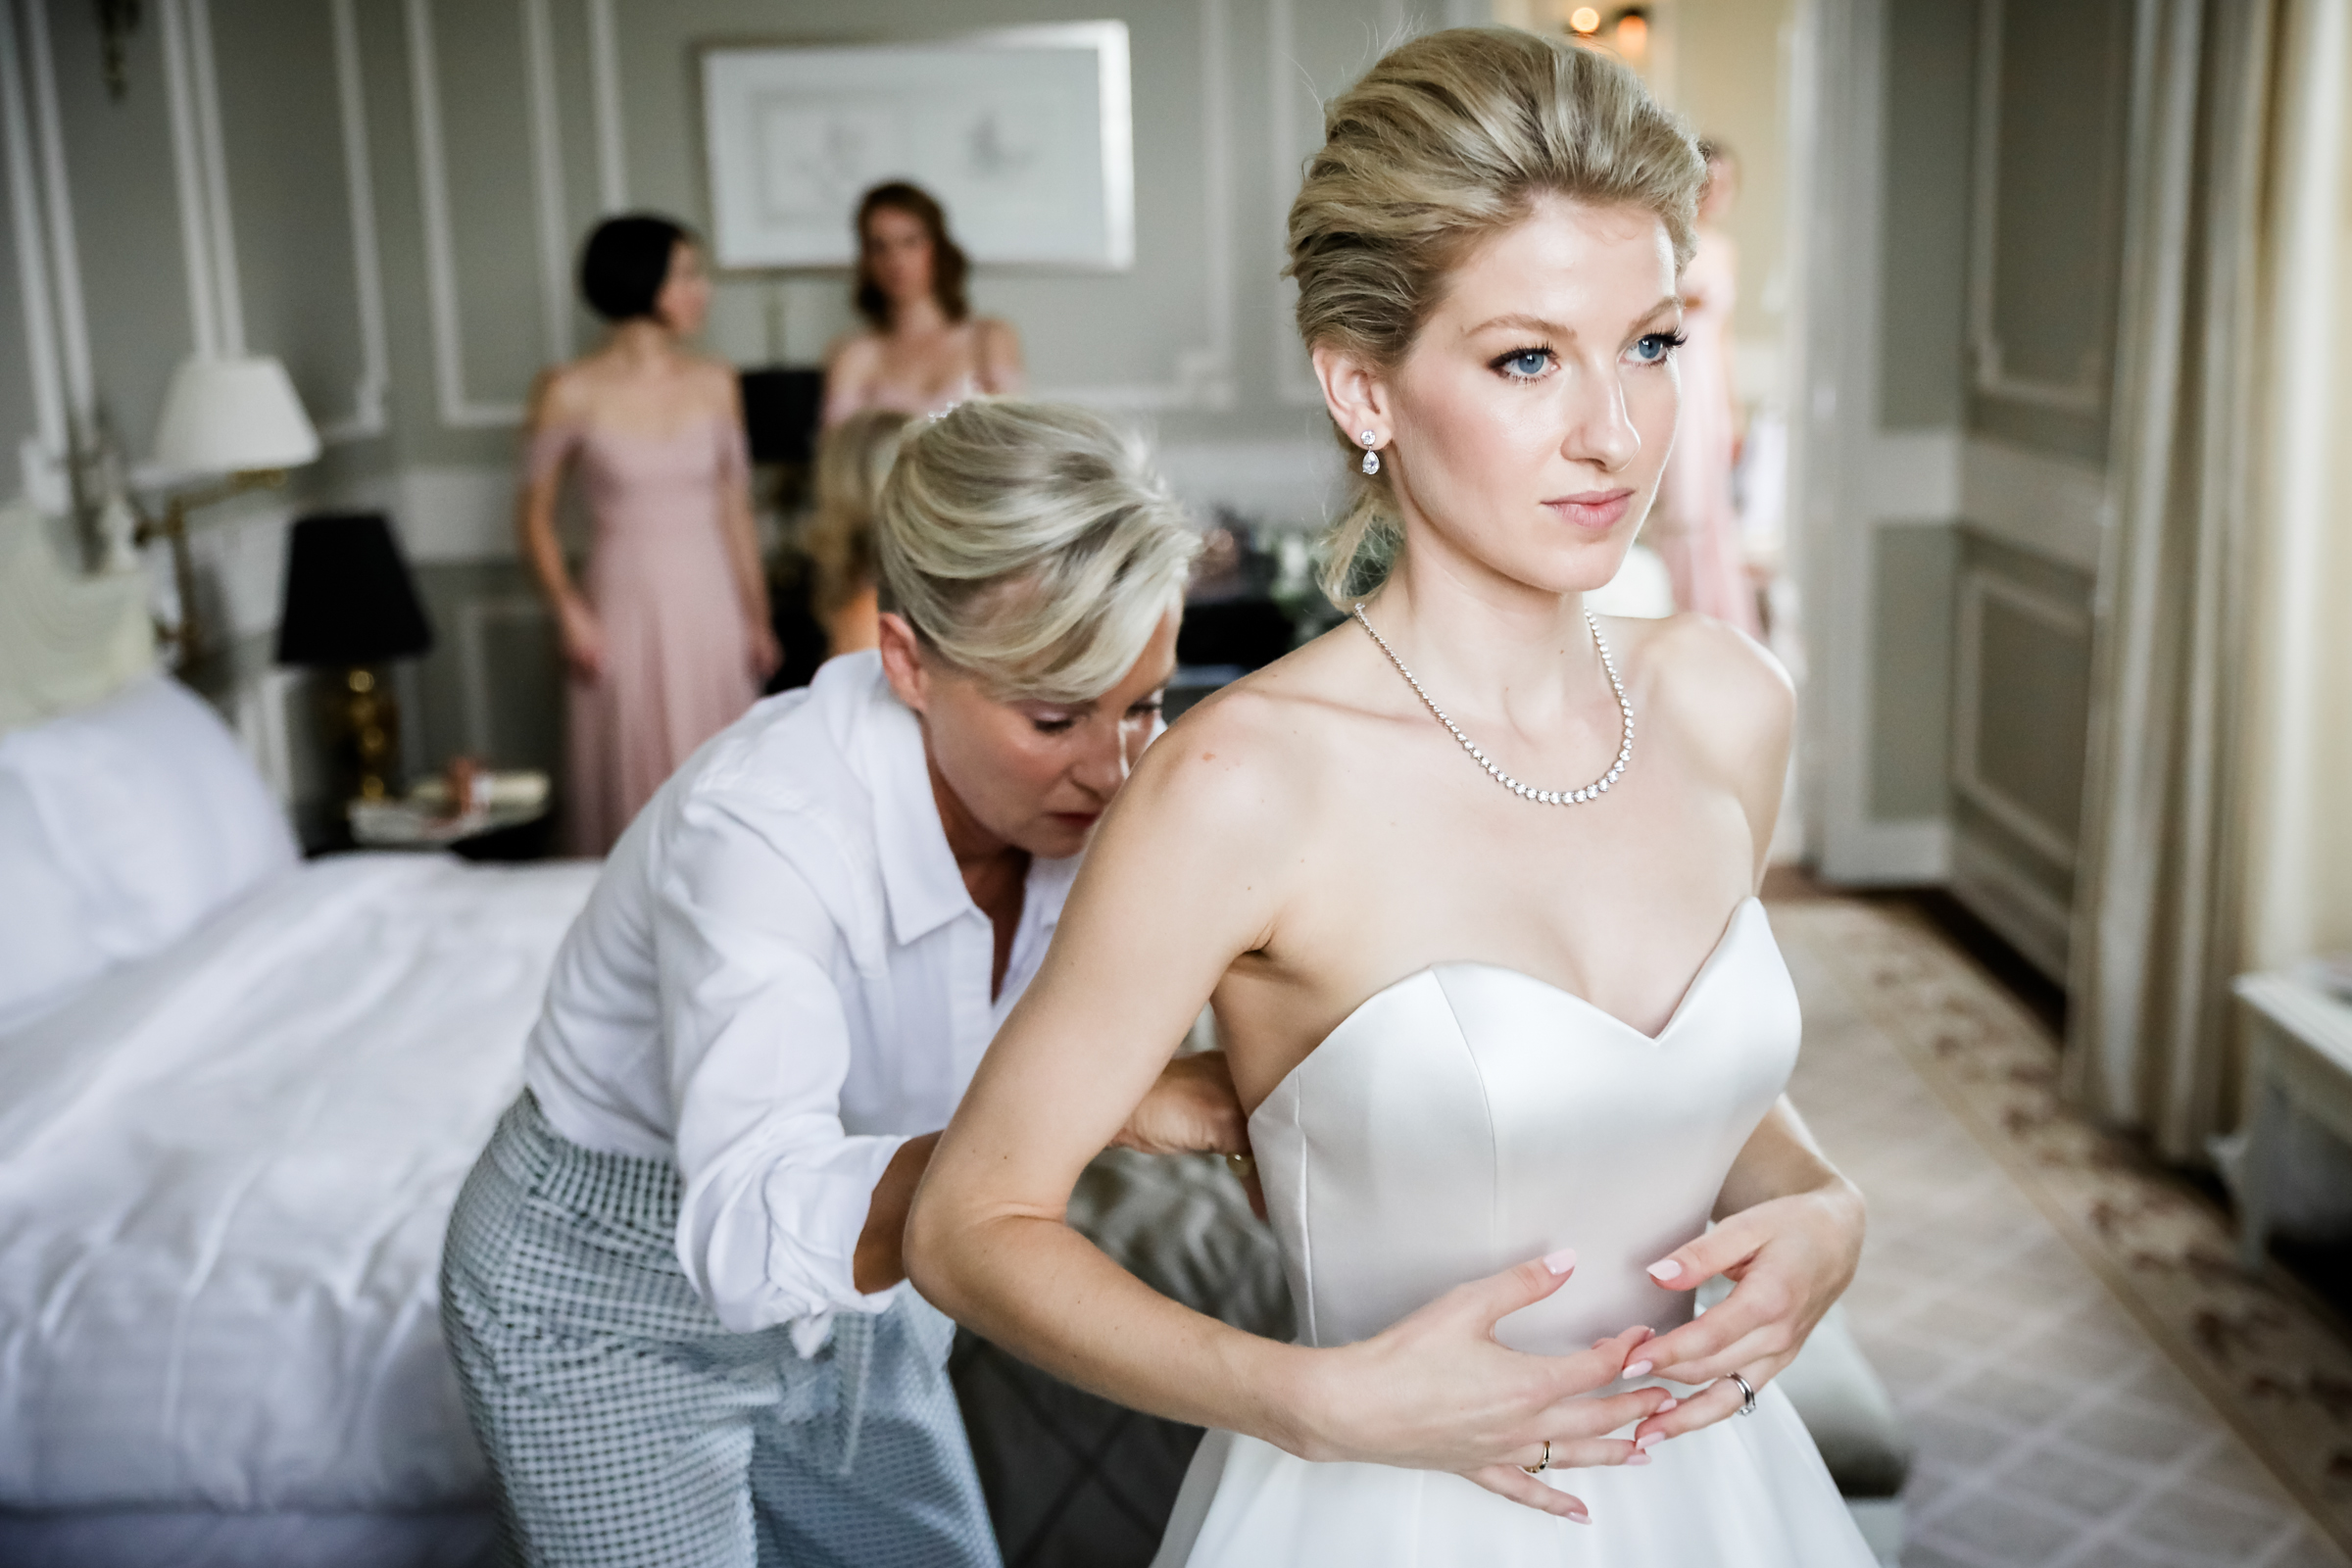 Bride getting ready - photo by Julien Laurent-Georges